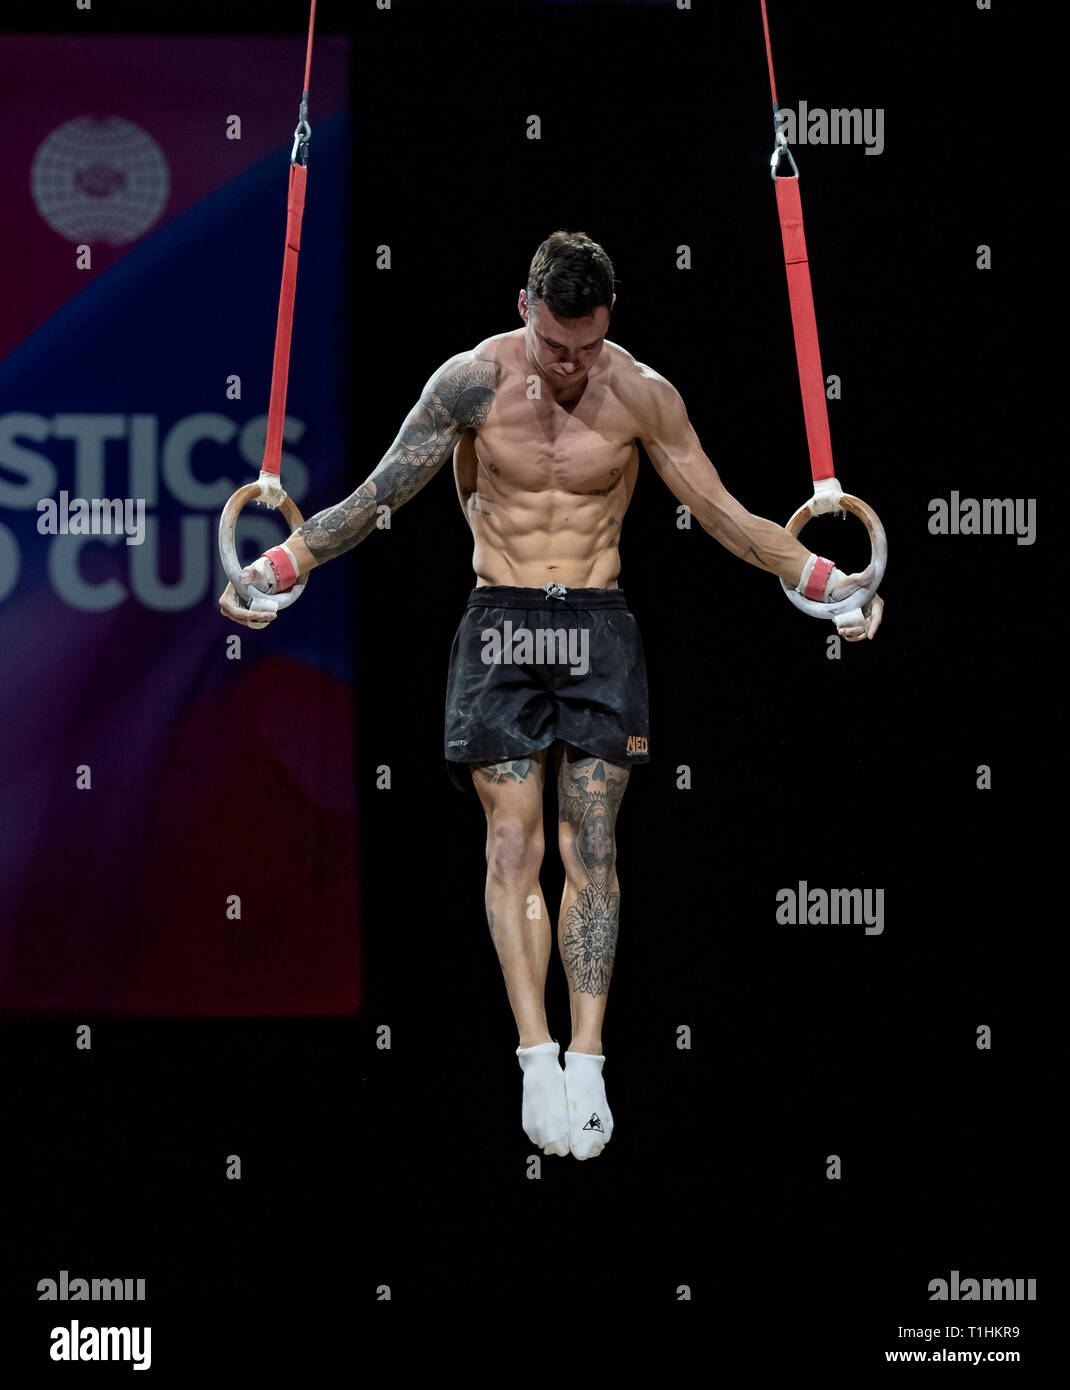 22.03.2019. Resorts World Arena, Birmingham, England. The Gymnastics World Cup 2019 Bart Deurloo (NED) during the Mens training session. - Stock Image